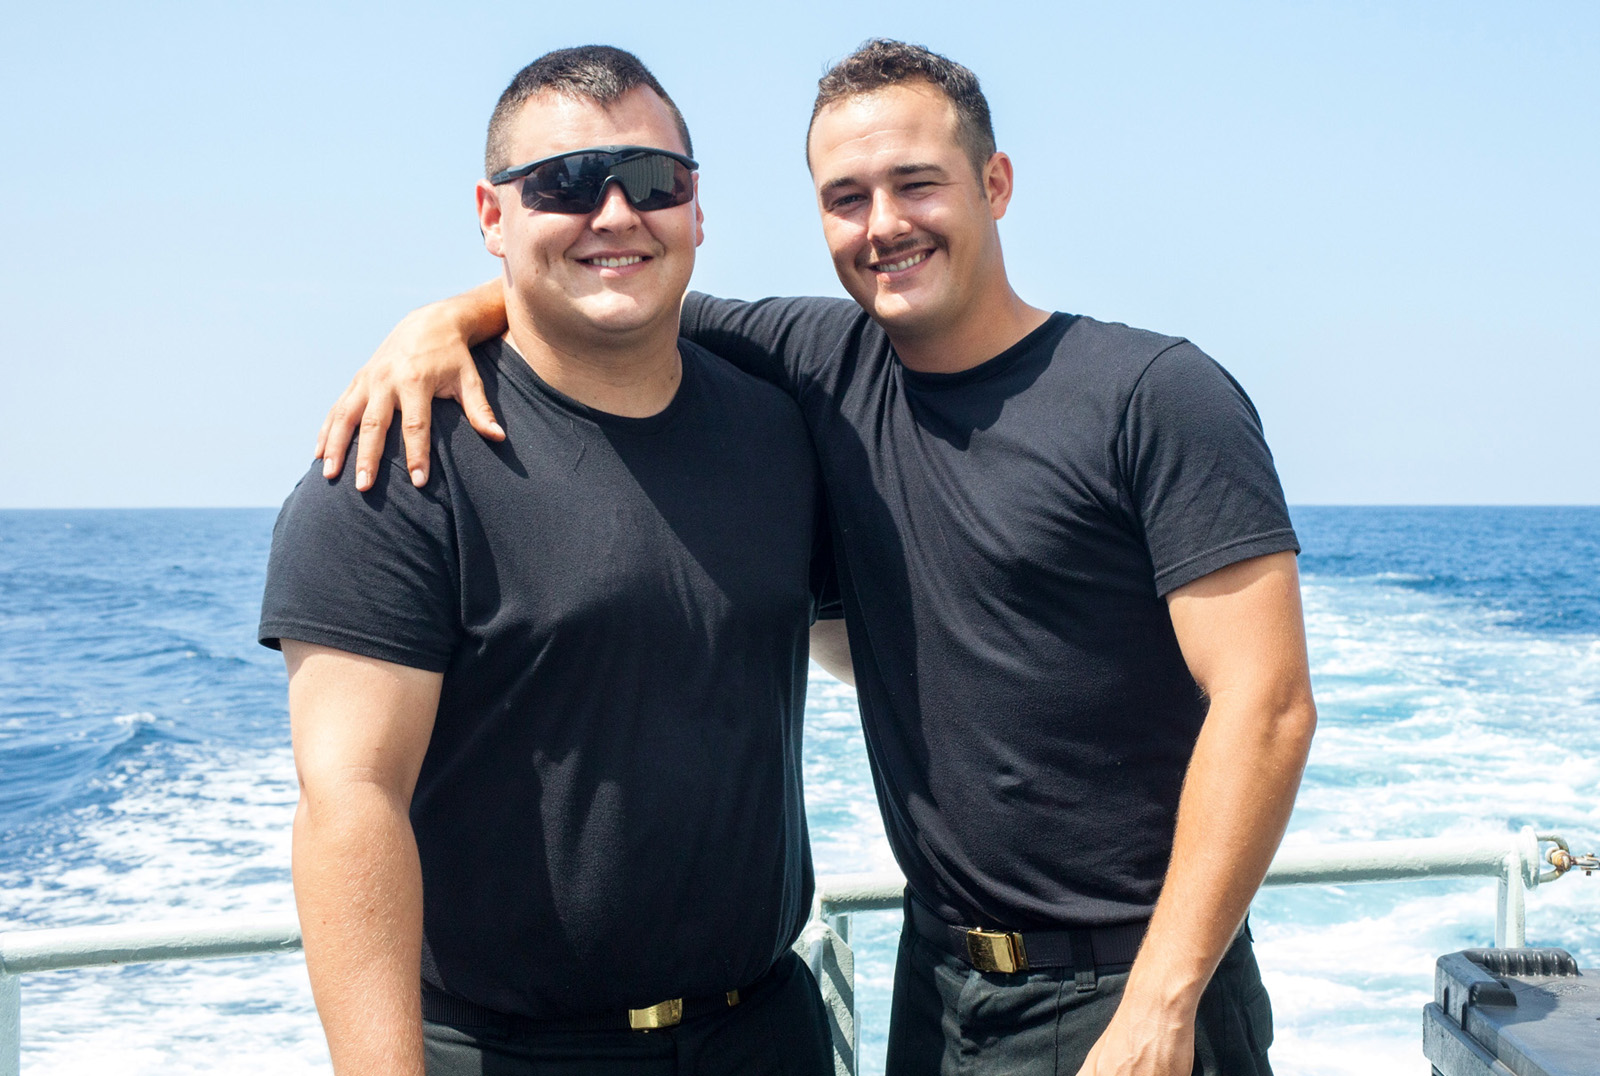 Master Seaman Donald Merlo and Leading Seaman Zachery Warwick